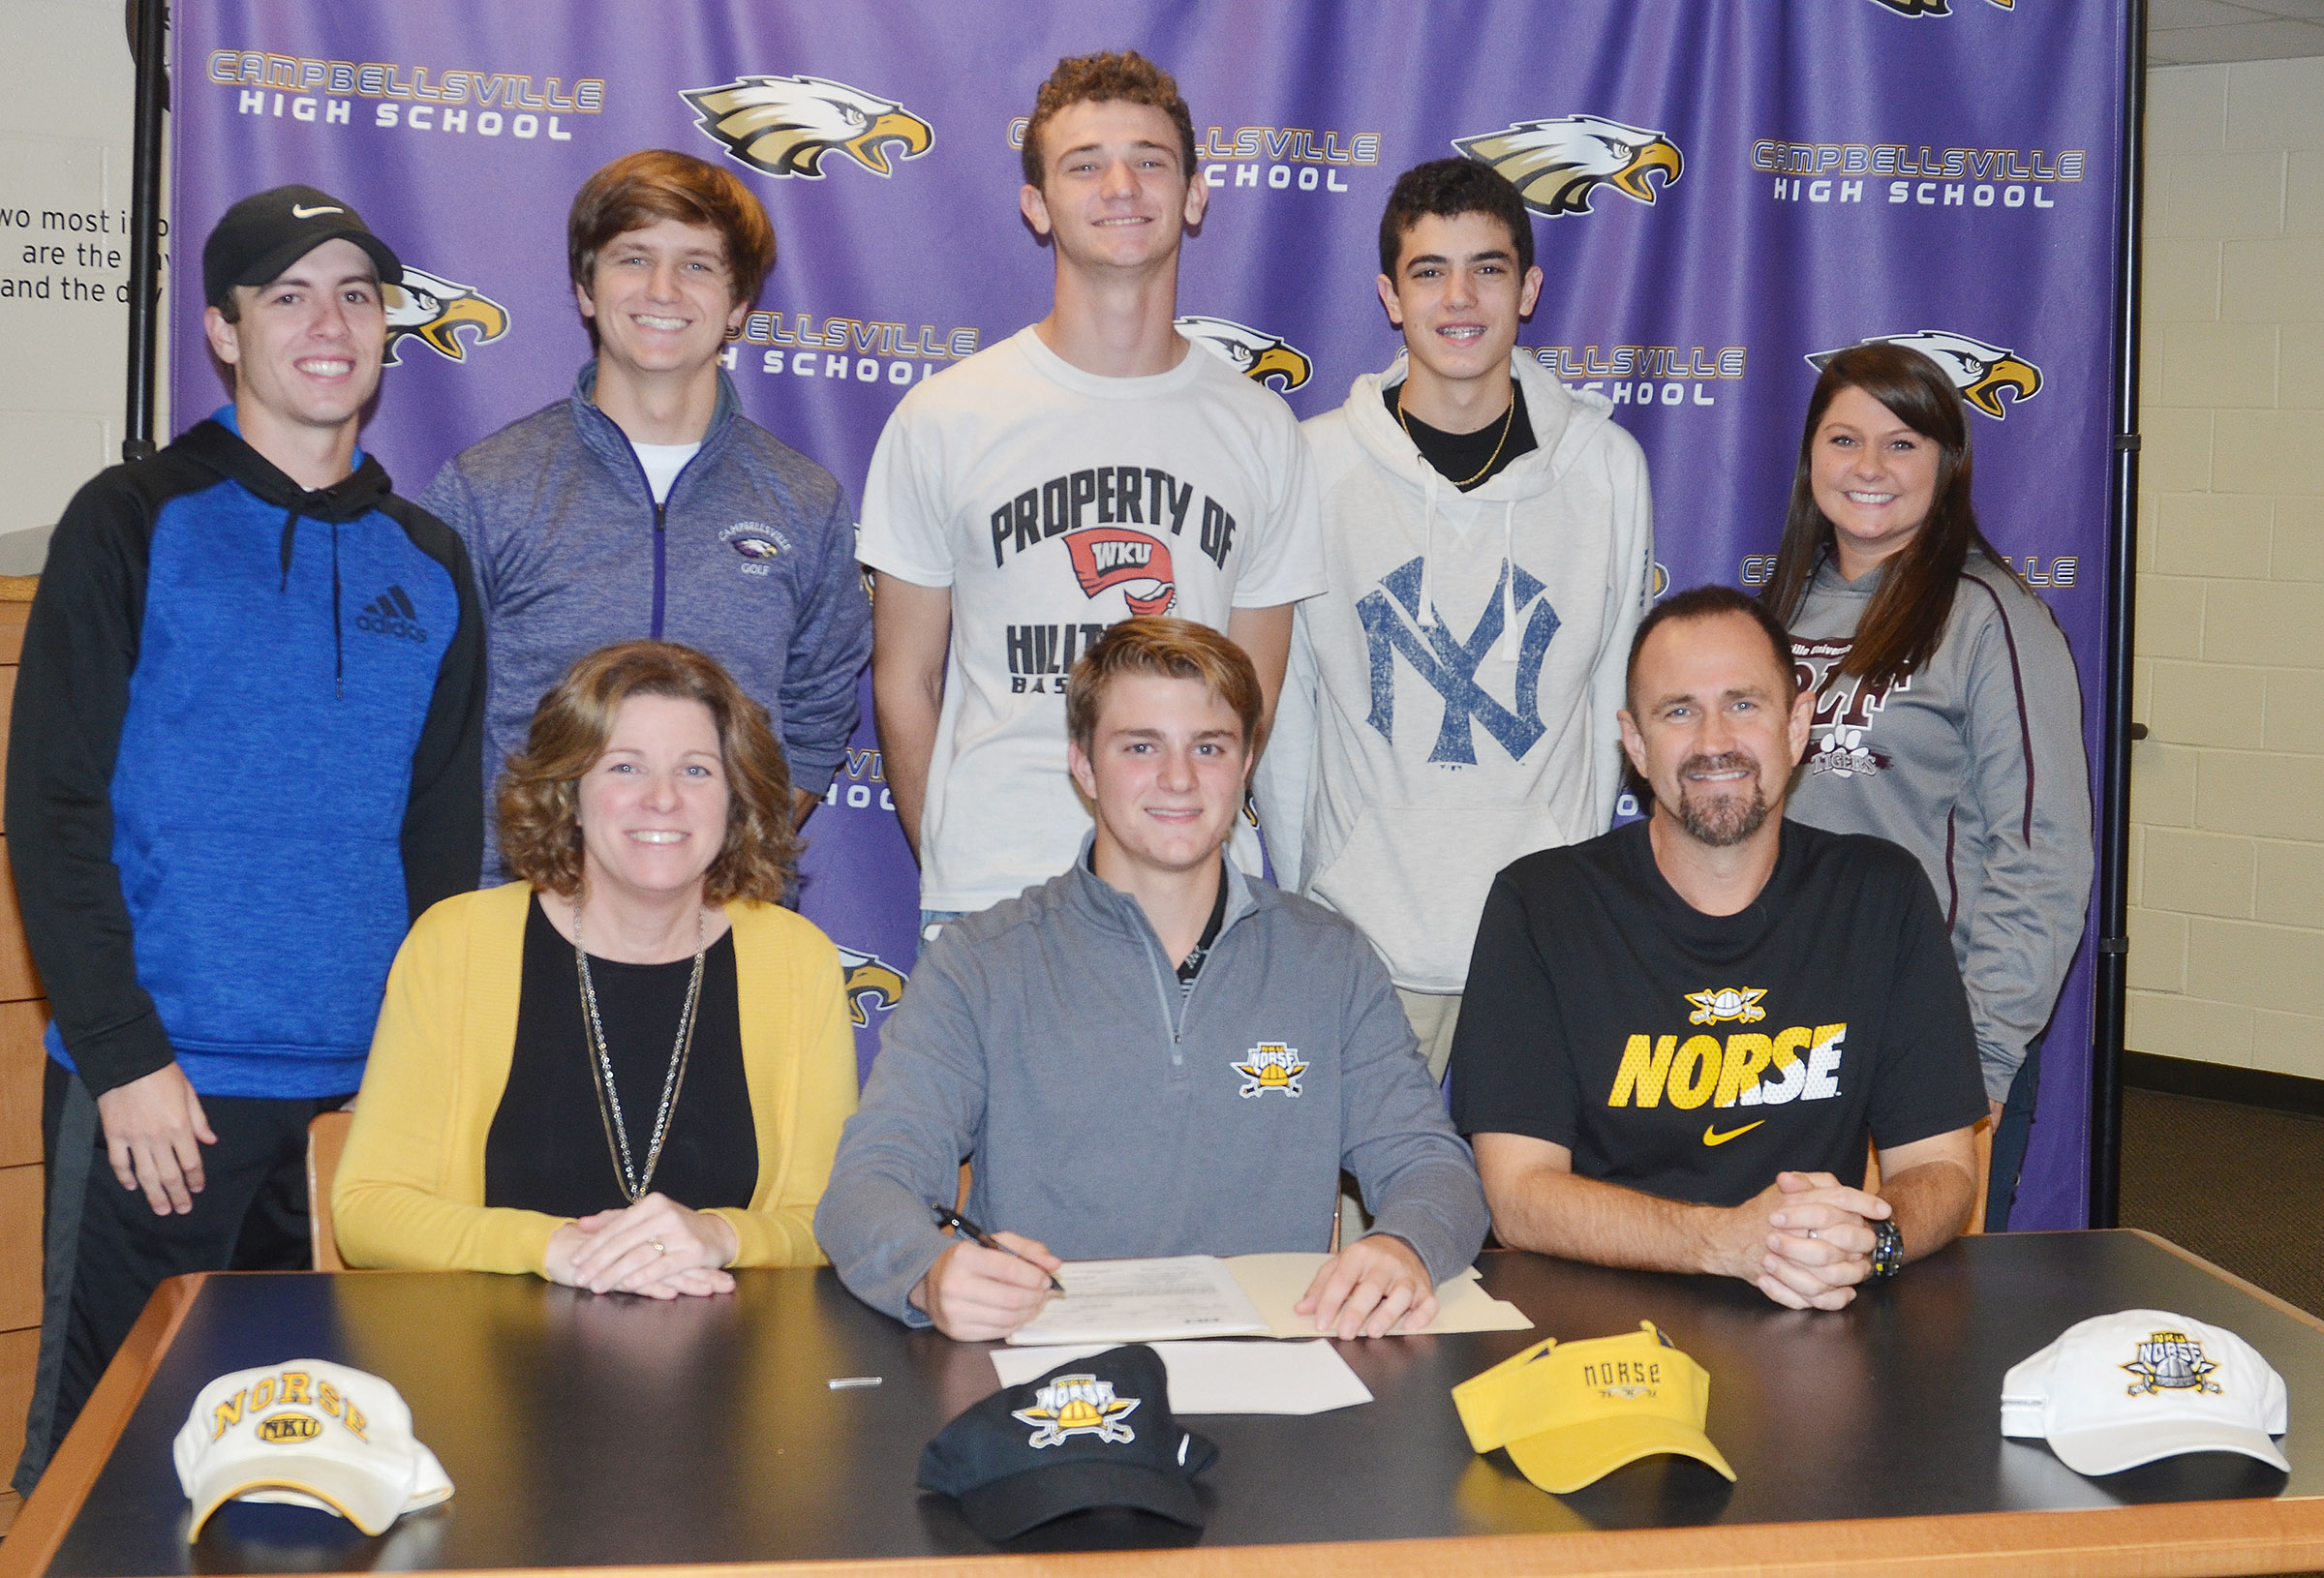 CHS boys' golf player Alex Doss will continue his academic and athletic career at Northern Kentucky University. He recently celebrated the announcement in a reception with his family and friends. Pictured with Doss are his parents, Steve and Dee, and, from left, back, teammates Layton Hord and Myles Murrell, juniors, senior Connor Wilson, freshman Kameron Smith and boys' golf coach Cassidy Decker.